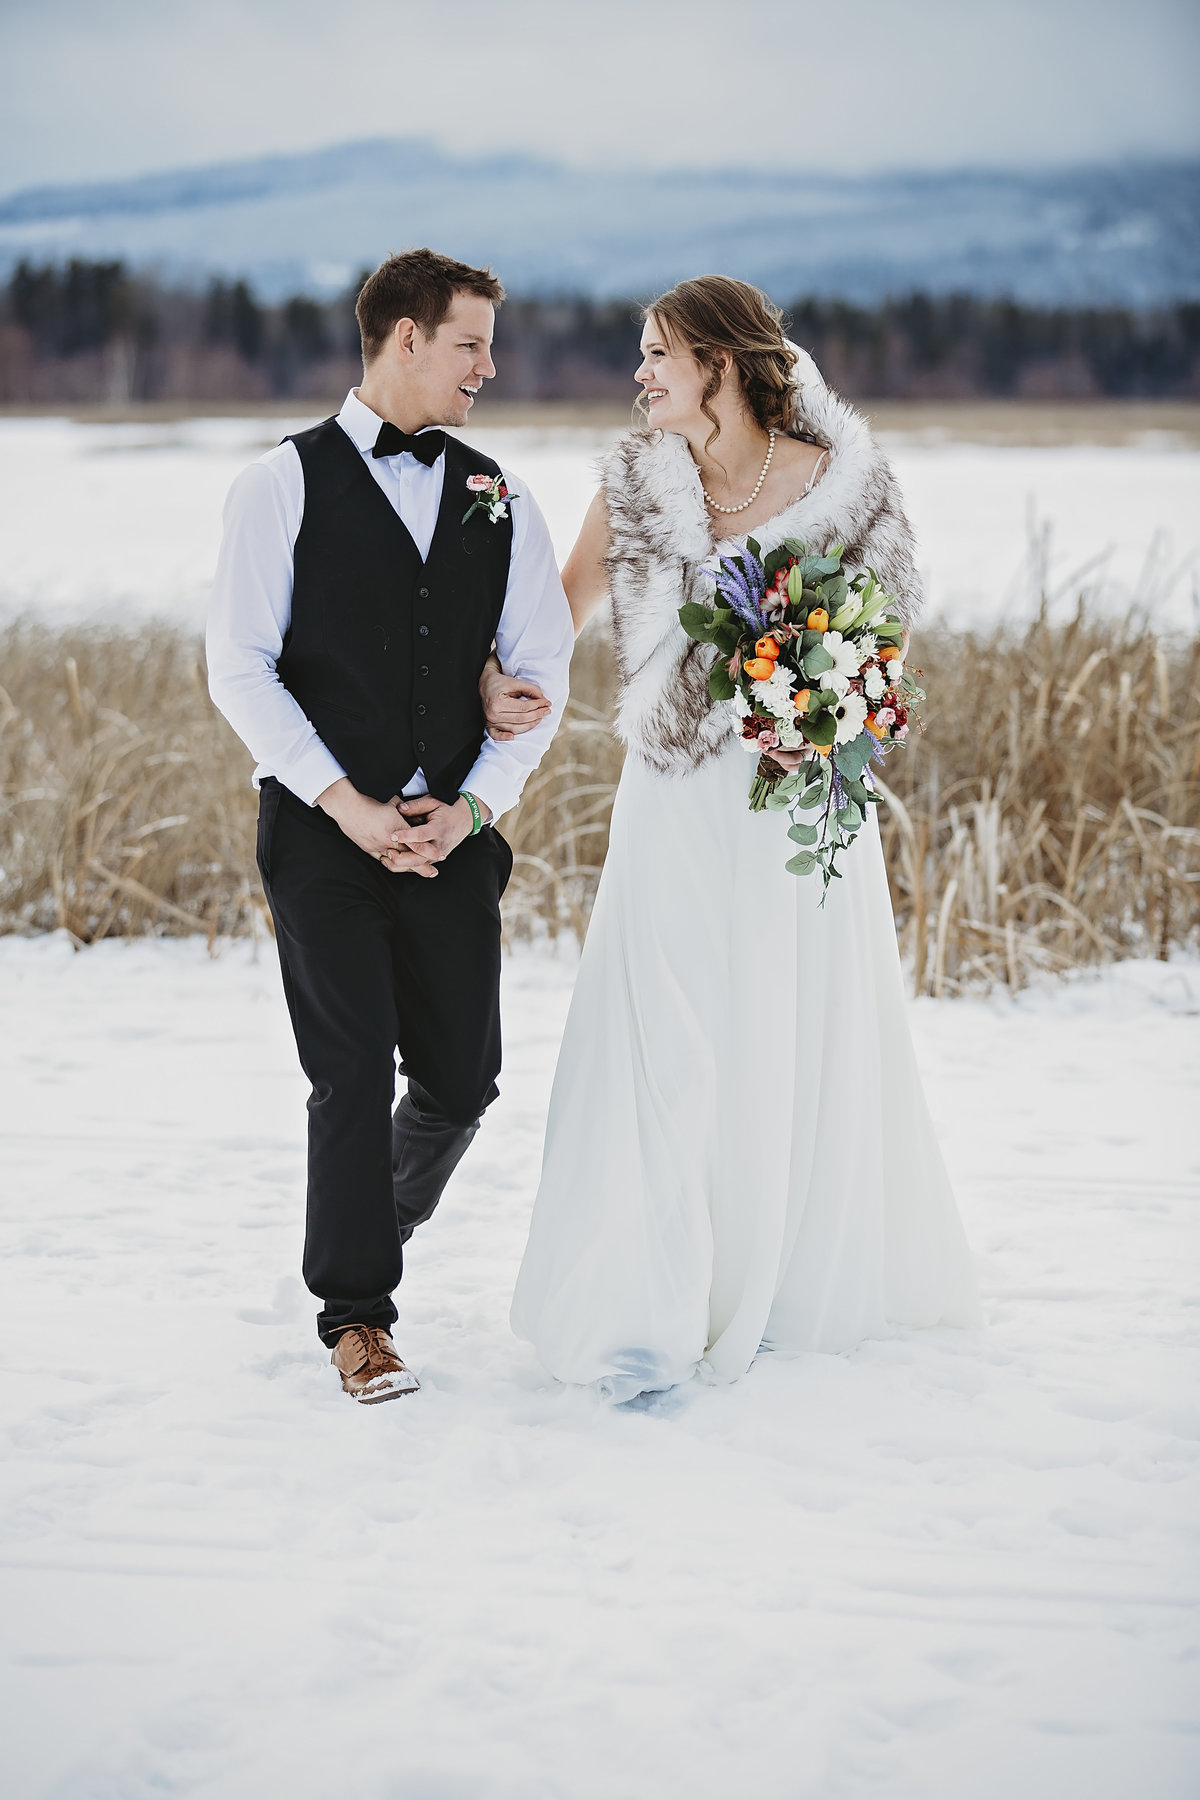 Wedding in Valemount BC Captured by local photographer